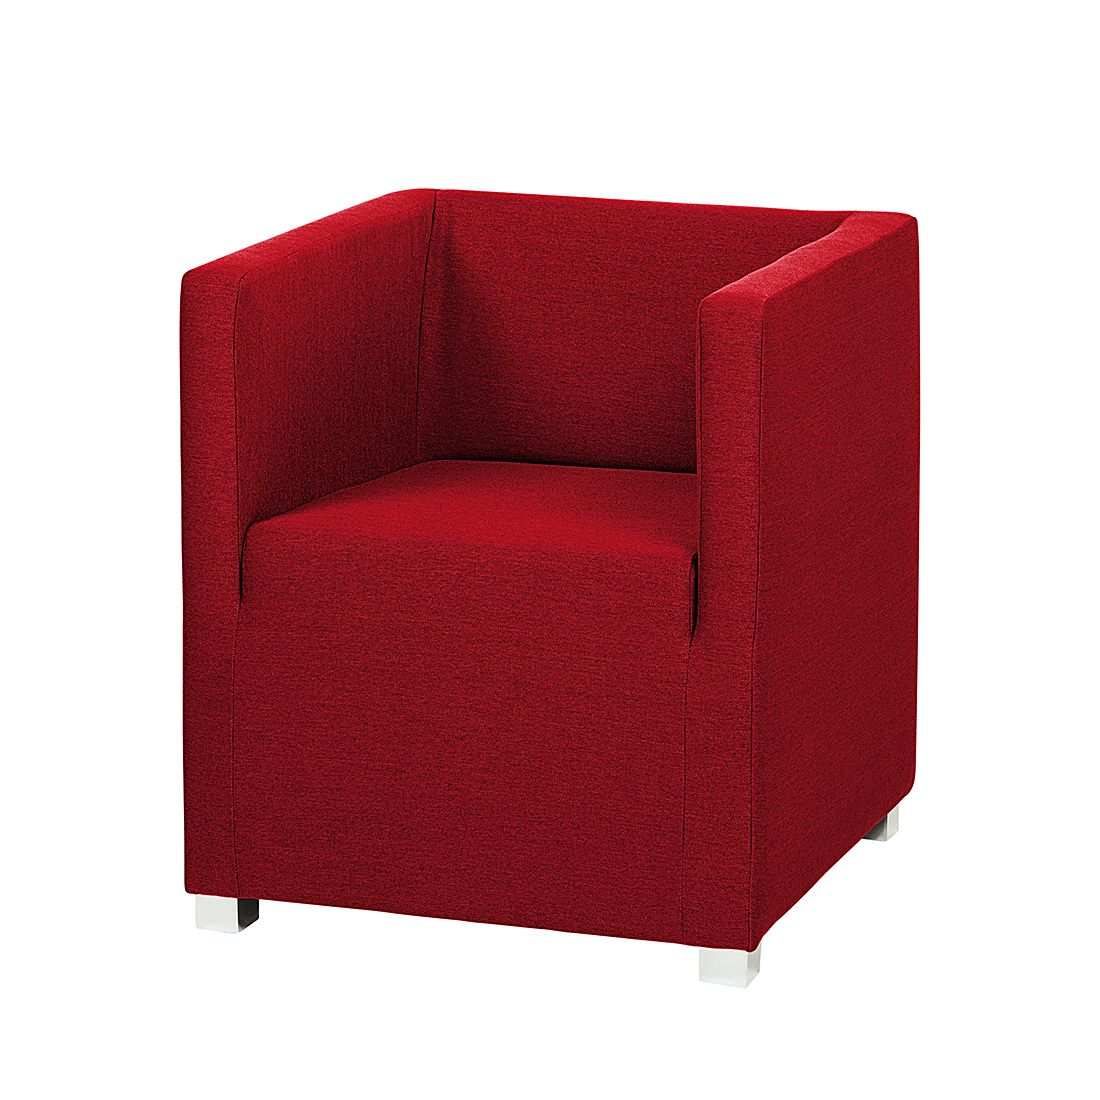 Fauteuil Carmen - Tissu rouge, mooved